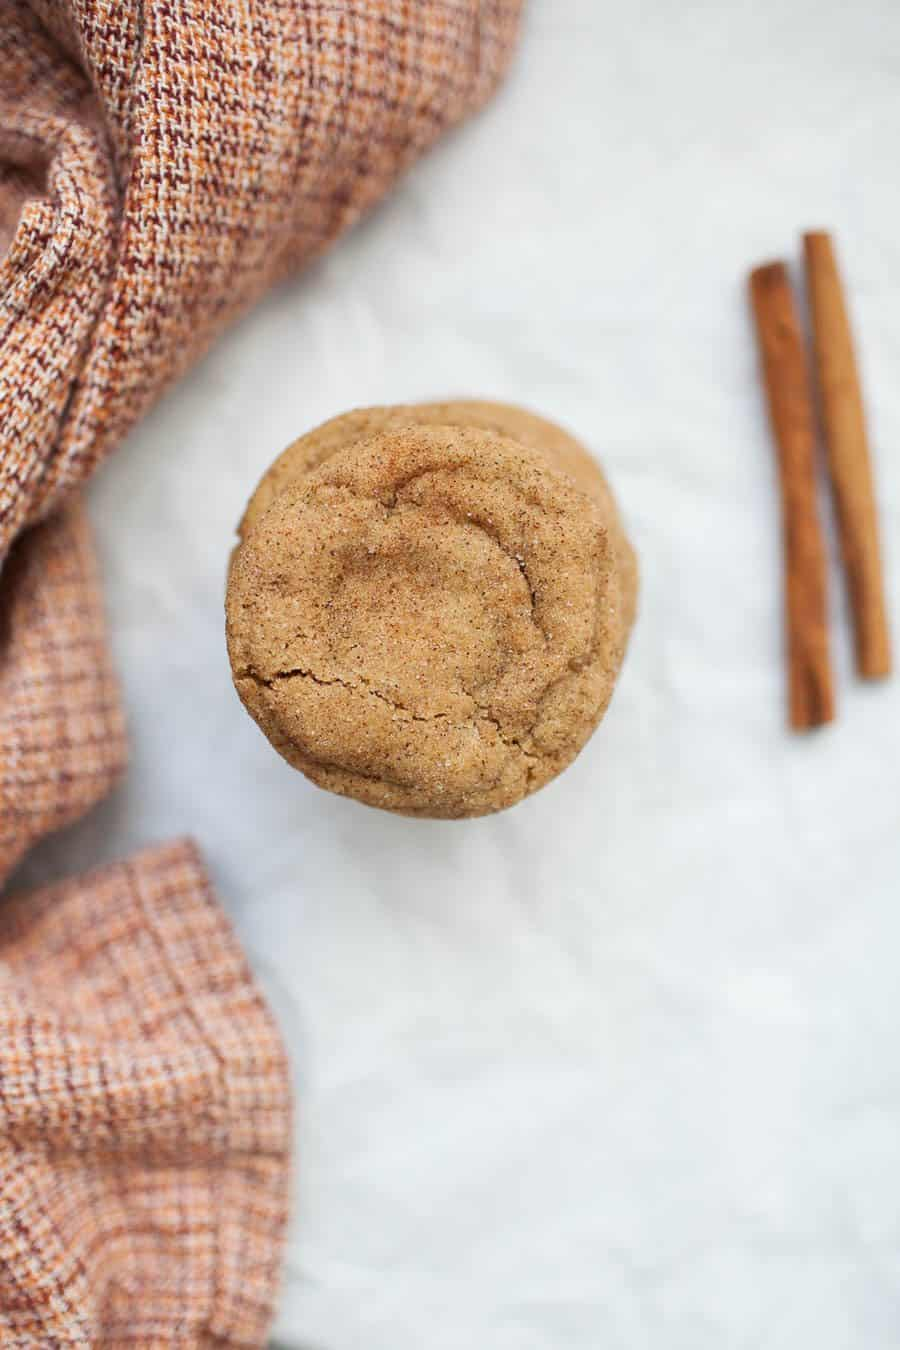 Ginger Molasses Snickerdoodles are the perfect holiday sweet! These ginger molasses cookies will remind you of the taste of gingerbread cookies, with the soft chewy texture that snickerdoodles are known for. These cookies are so simple to make and share with friends at your next holiday party!?